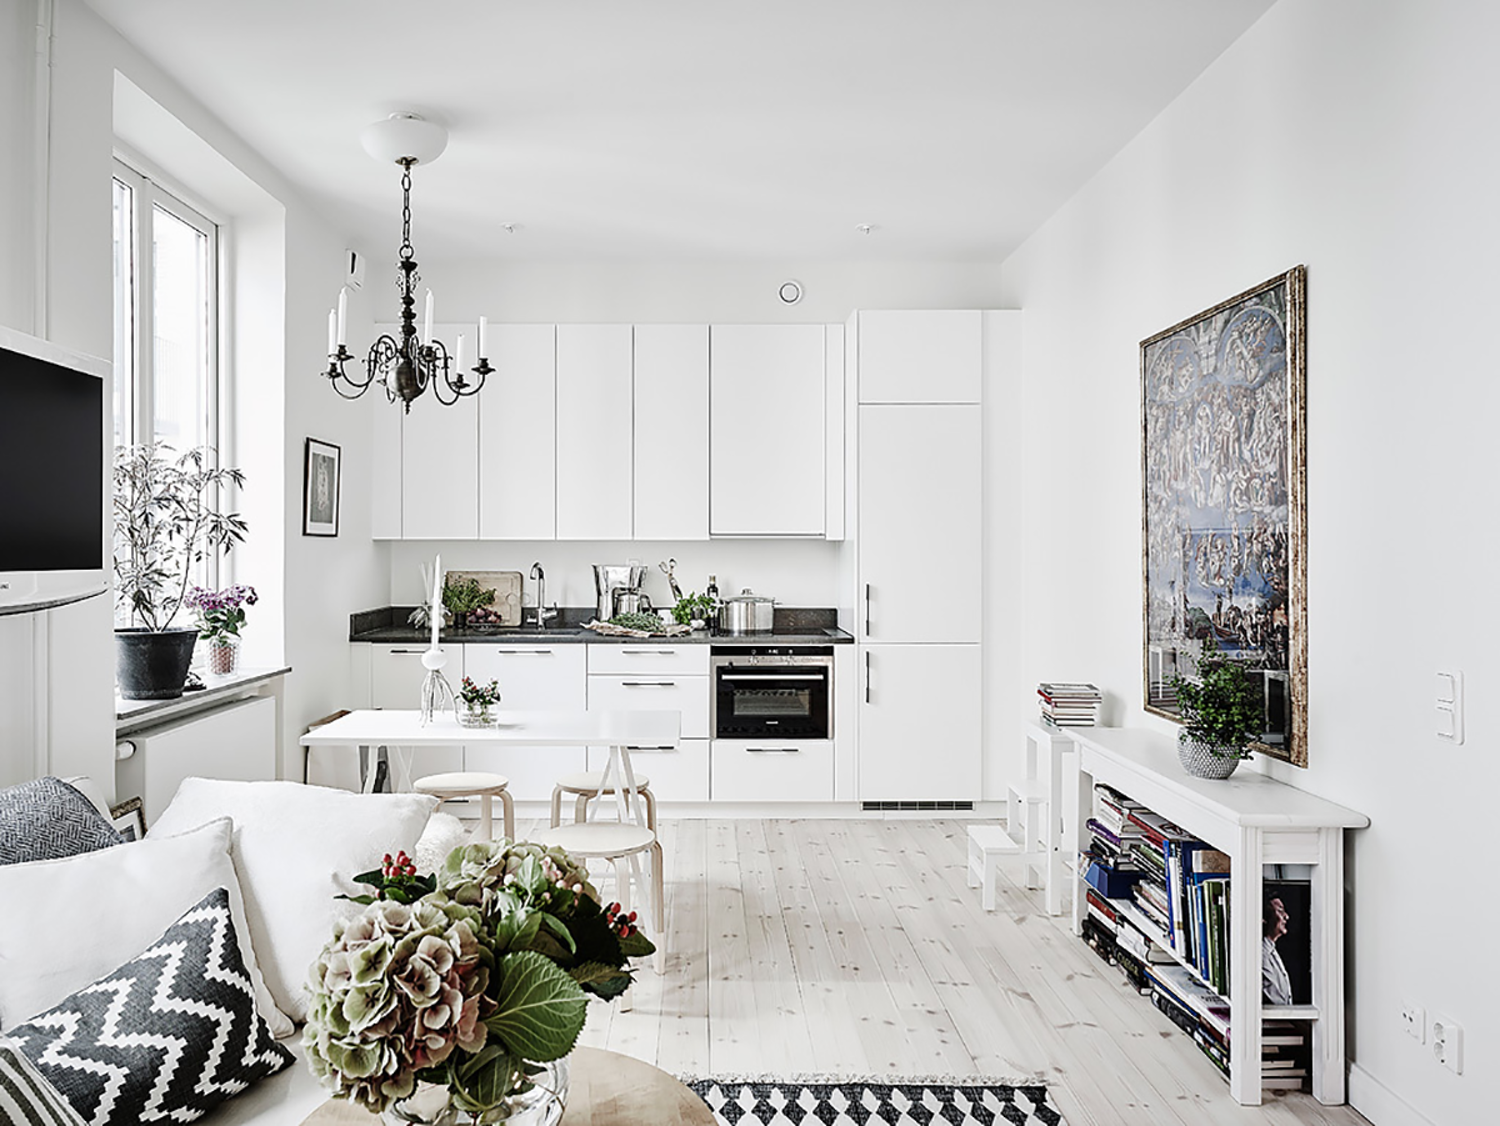 Unusual Kitchens With One Really Good Thing Going For Them